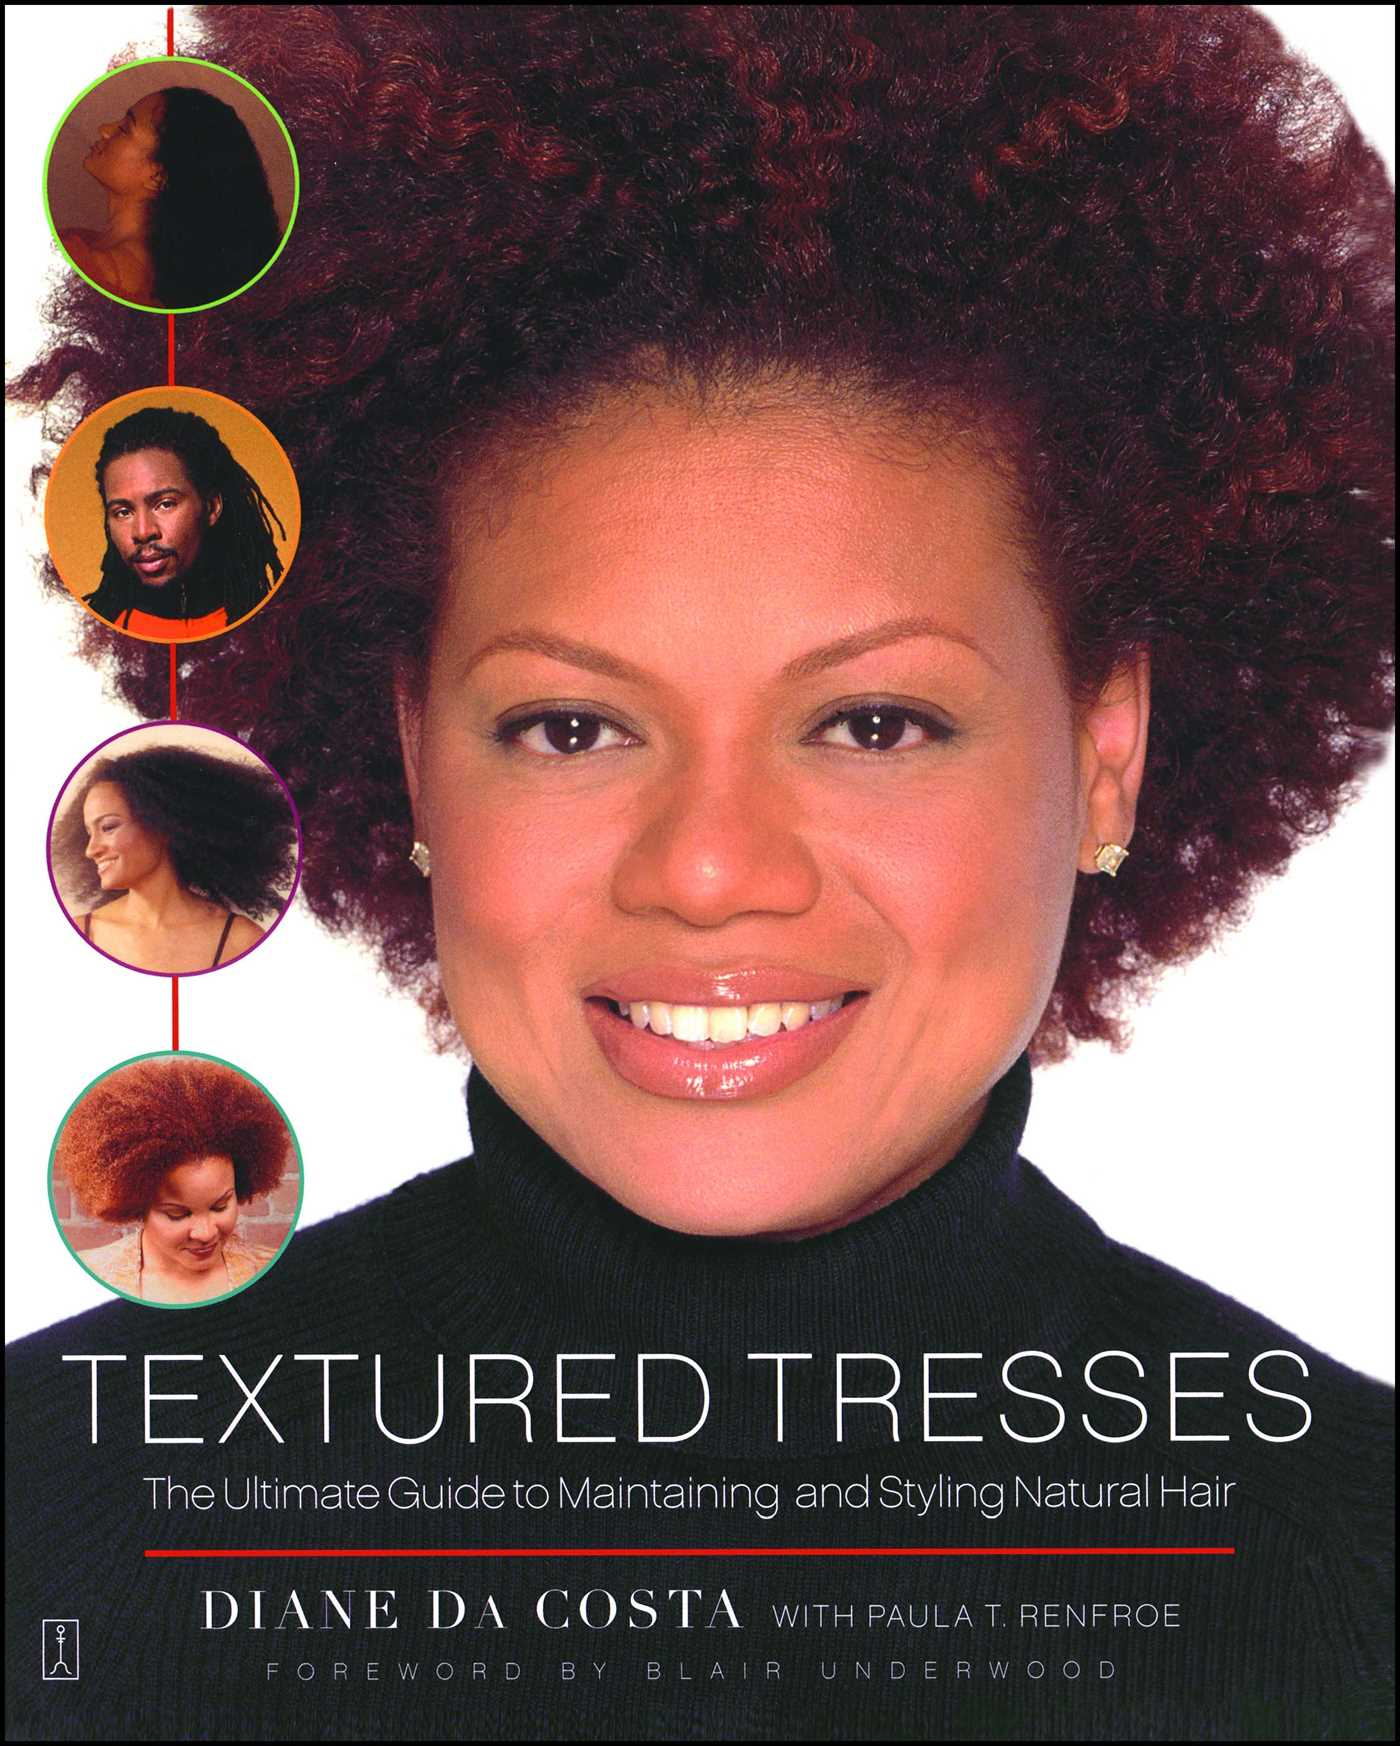 styling texturized hair textured tresses ebook by diane da costa paula t renfroe 3904